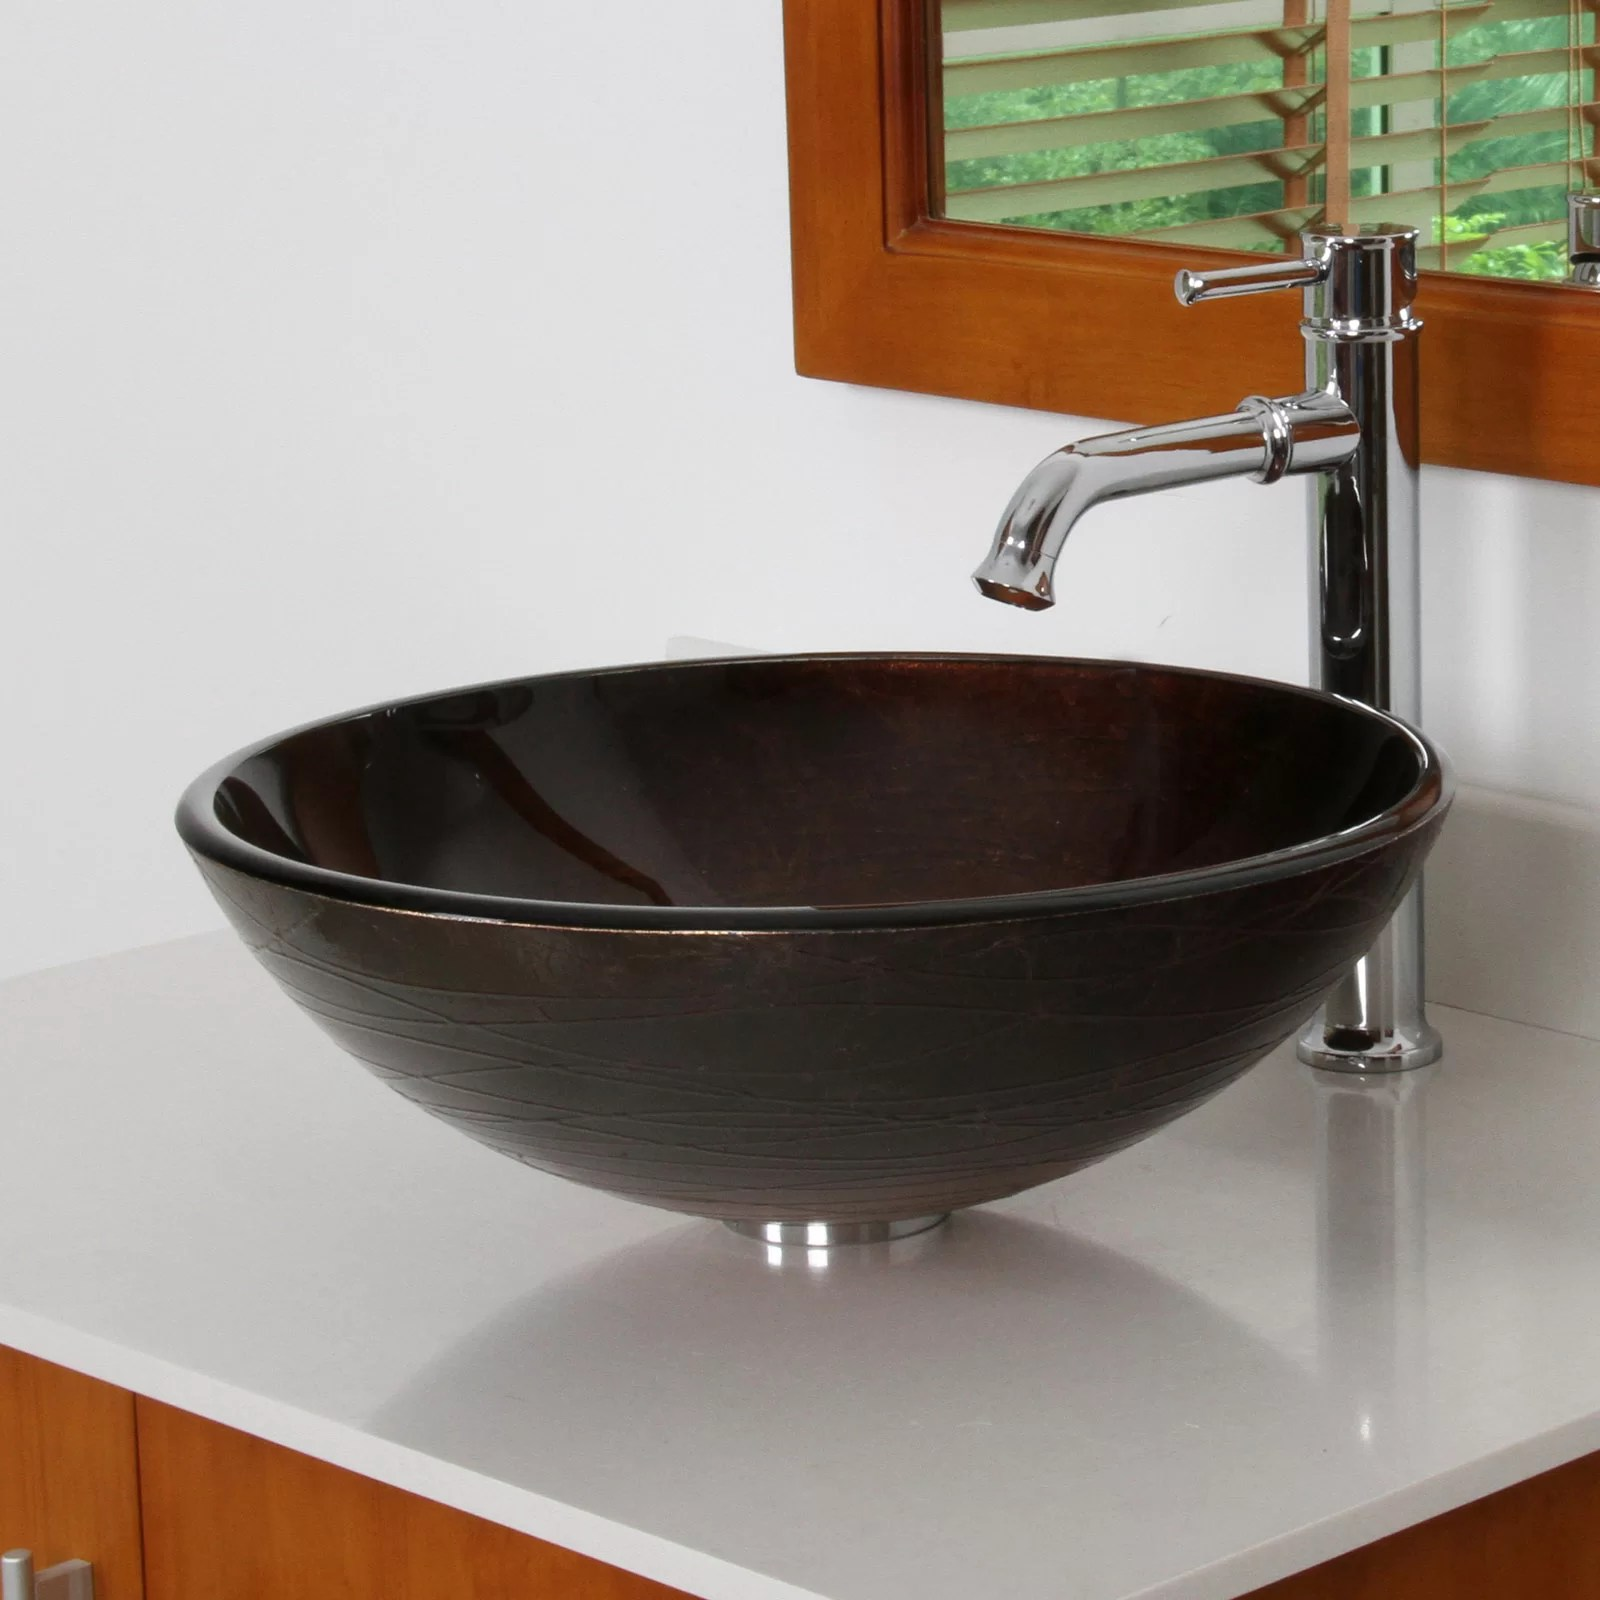 Glass Sink Bowls Bathroom Sinks Undangan Bathroom Vanity With Bowl Sink